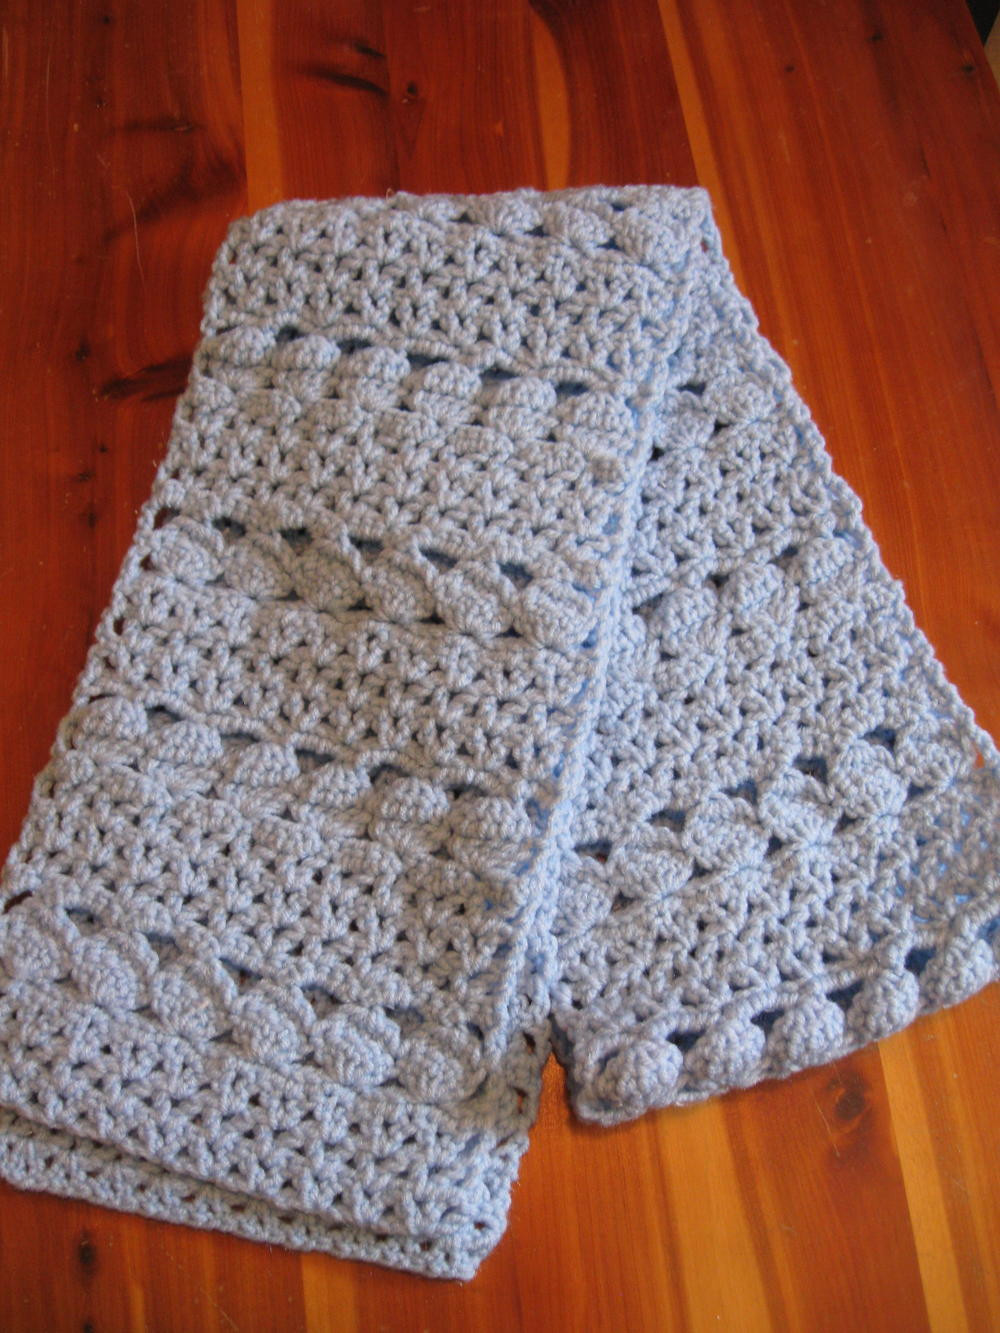 Lovely Cozy Blue Crochet Scarf Crochet A Shawl Of Beautiful Cornflower Blue Free Crochet Pattern Crochet A Shawl